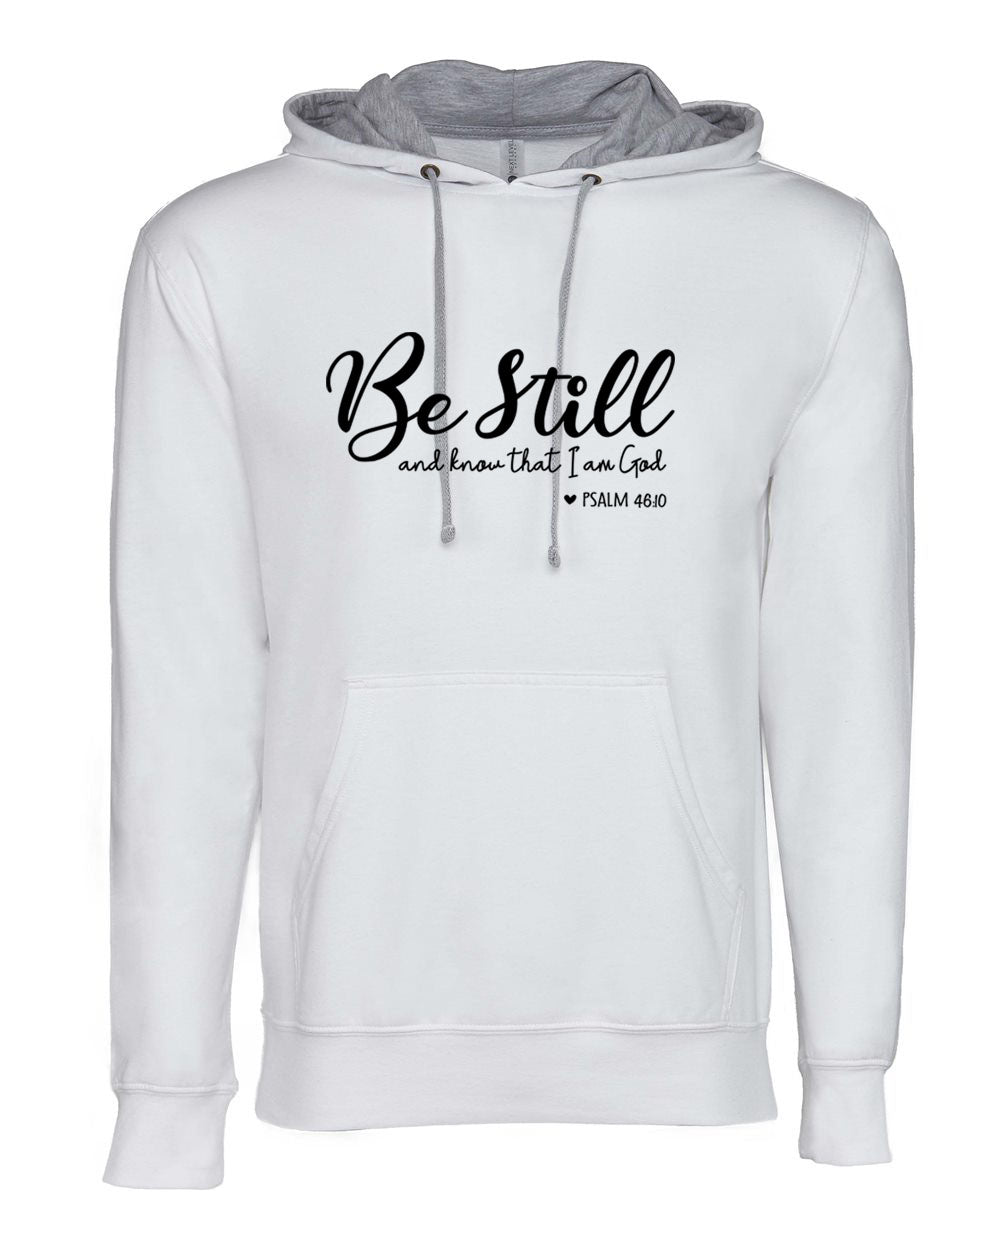 Be Still and Know - Lightweight Hoodie - 5.5 oz.